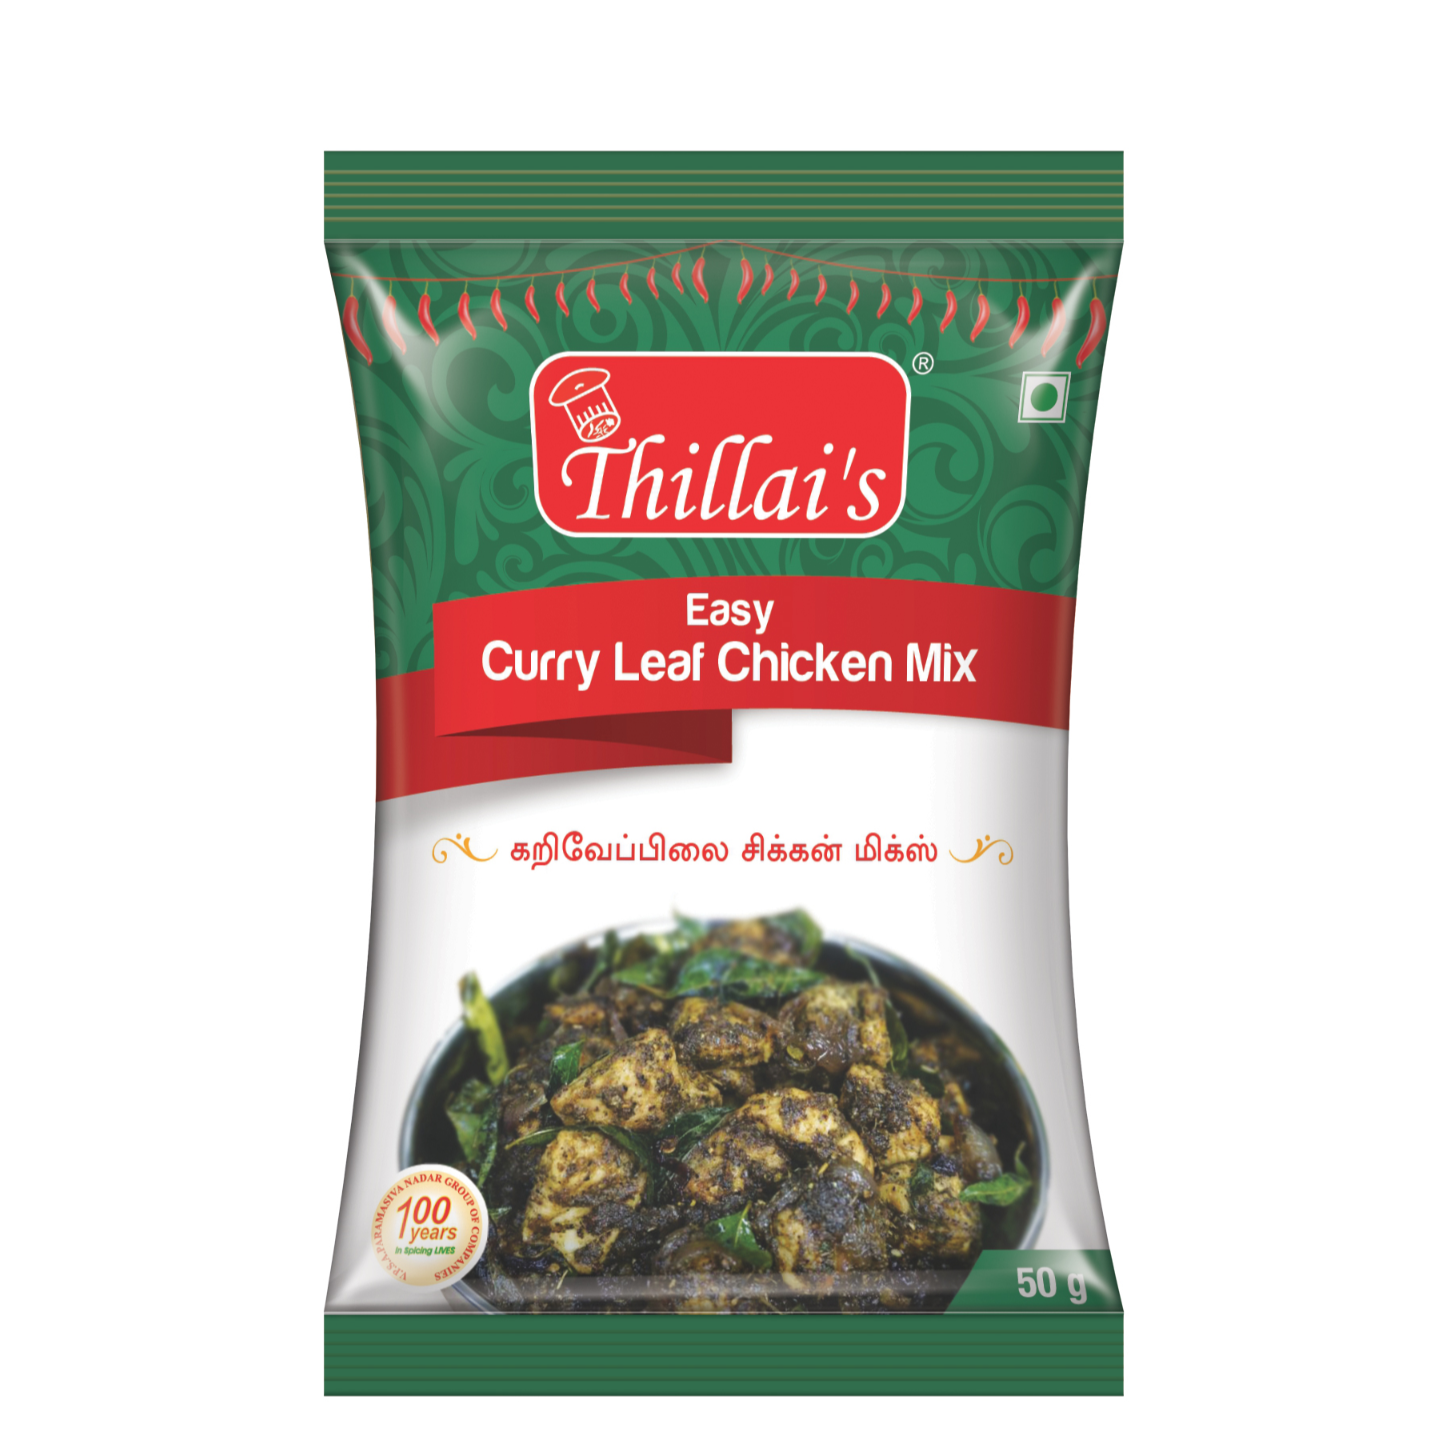 Easy Curry Leaf Chicken Mix